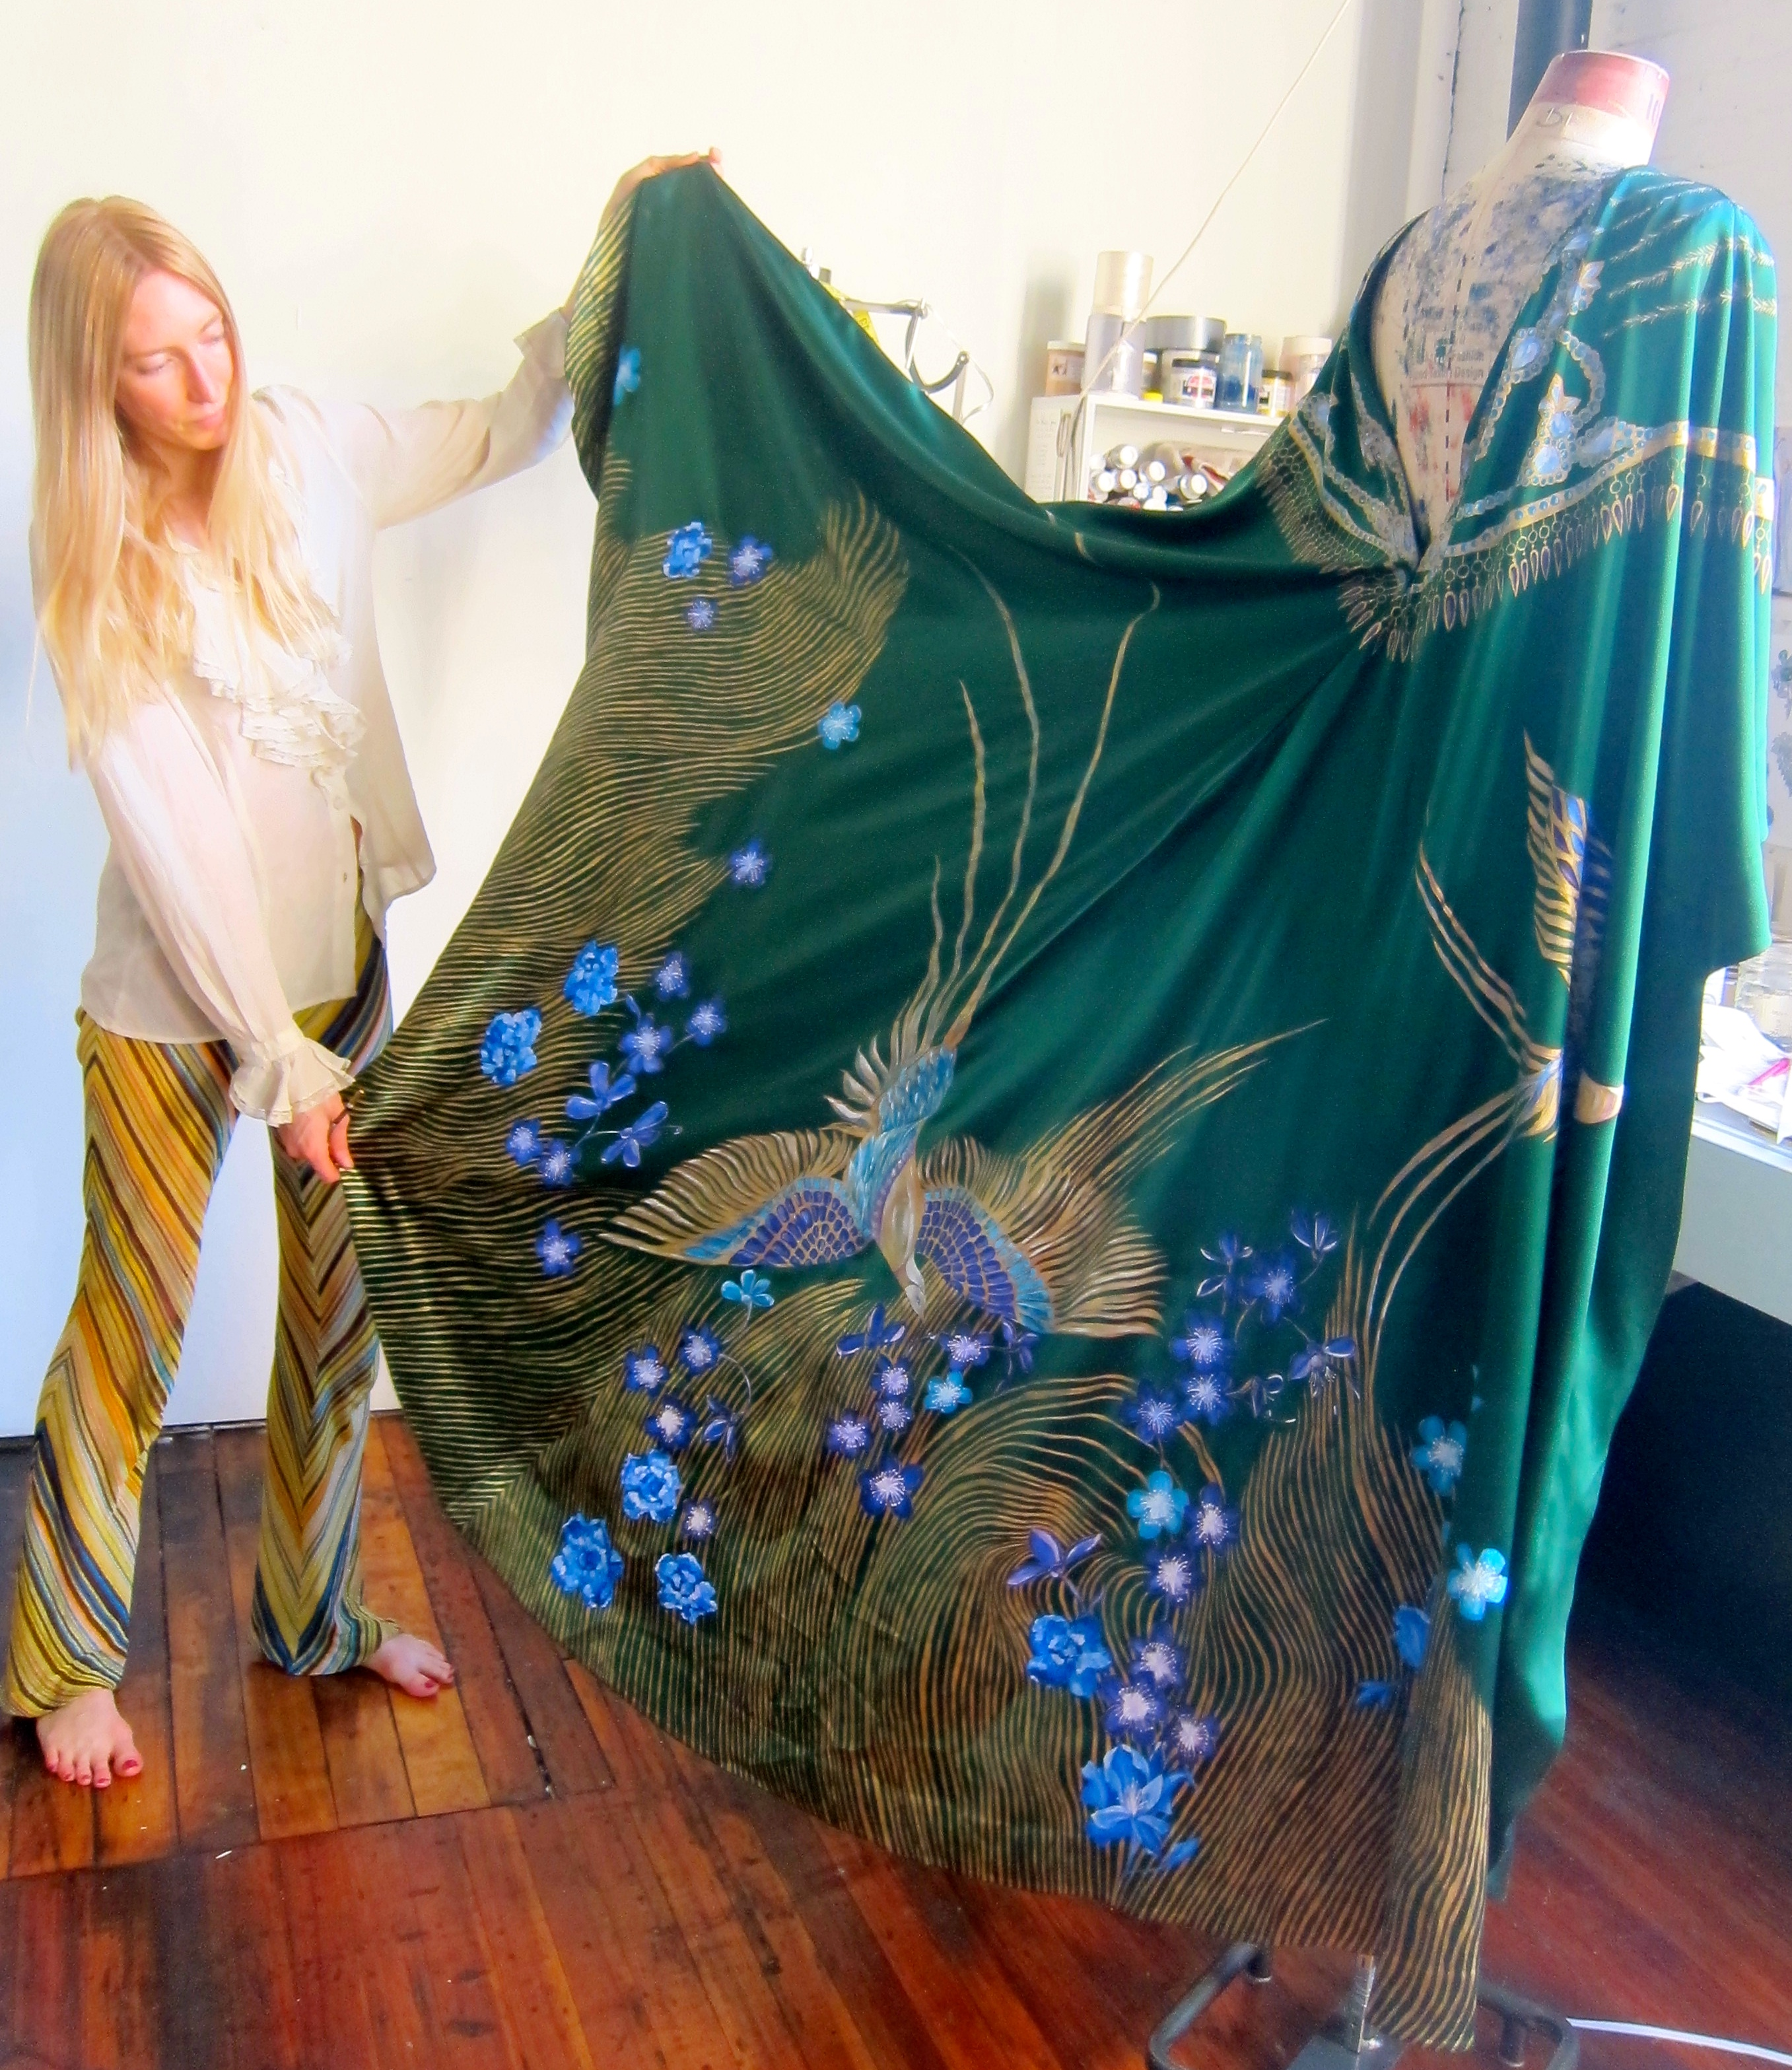 Holly Fowler shows off the hand-painted details of the dress worn by Samantha Boardman to the Met Gala